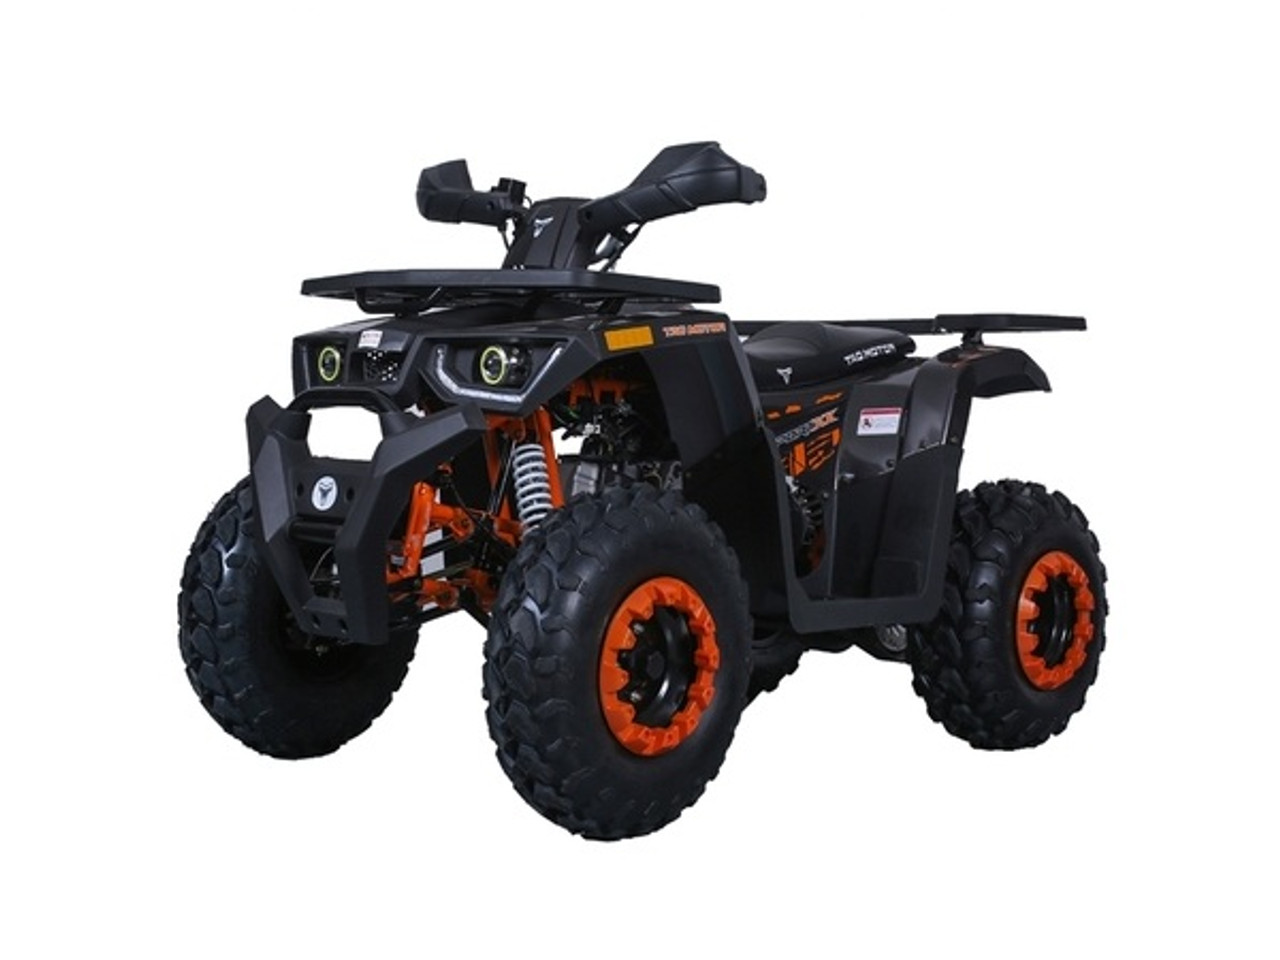 TaoTao G200 Utility ATV, Air Cooled, 4-Stroke, 1-Cylinder, Automatic - Fully Assembled and Tested